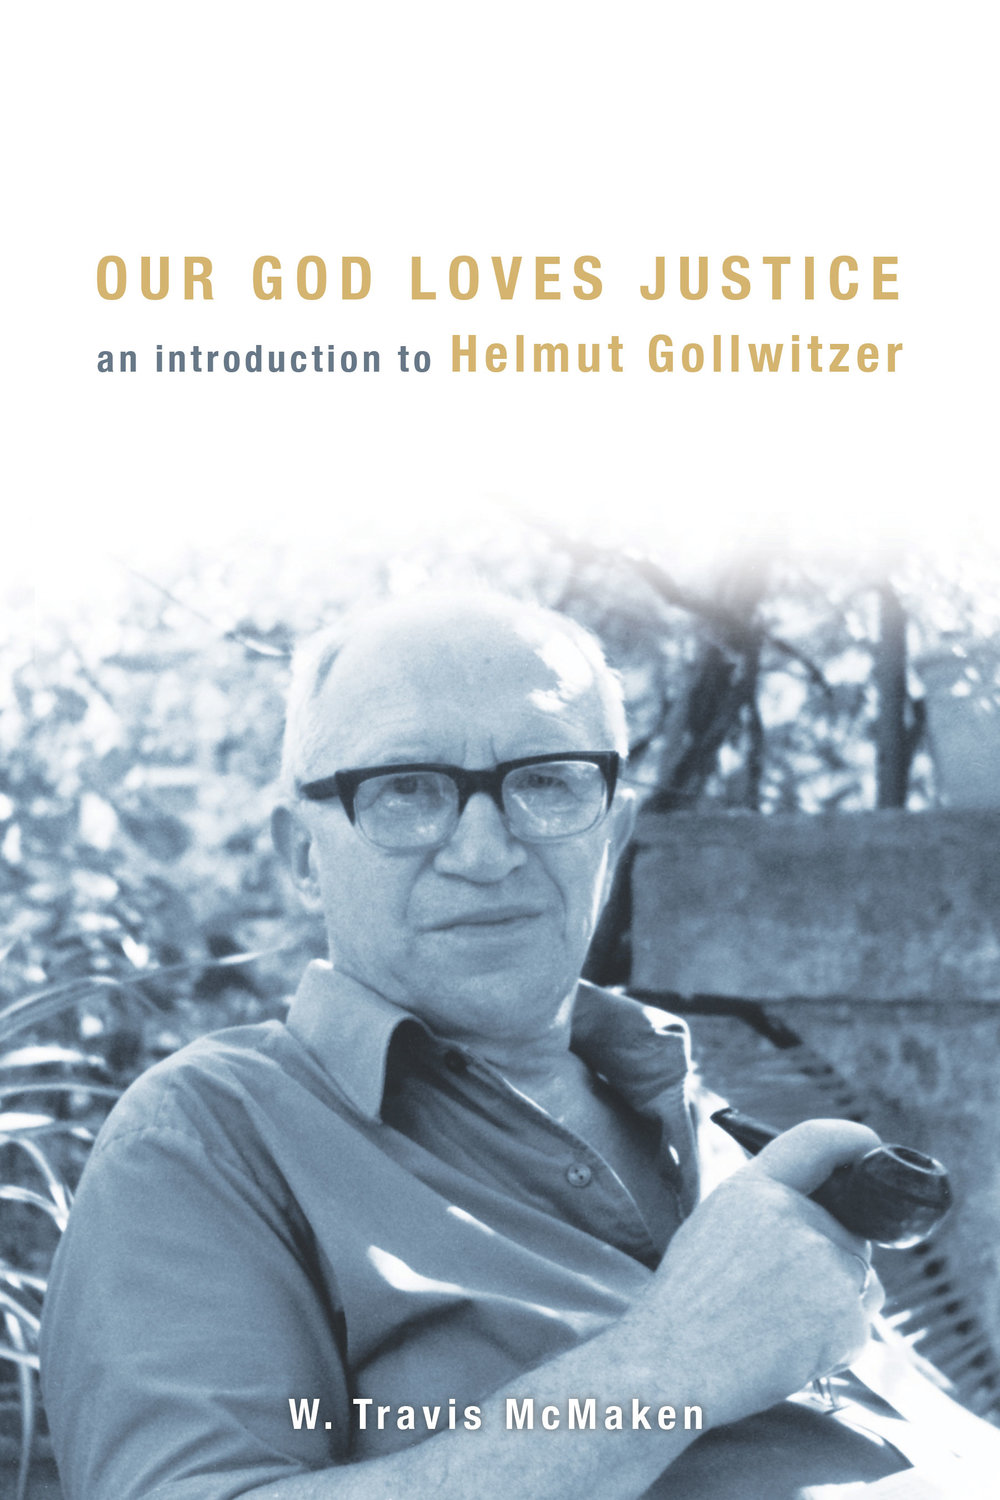 - This piece is part of a series of responses to the book Our God Loves Justice: An Introduction to Helmut Gollwitzer by W. Travis McMaken. We will be posting five responses to the book as part of this series. Our second contribution is from Dean Detloff.Dean Dettloff (@DeanDettloff) is a Catholic communist in Toronto, where he writes as a freelance journalist. He is completing a PhD in the philosophy of religion at the Institute for Christian Studies. With Matt Bernico, he co-hosts The Magnificast, a podcast exploring Christianity and leftist politics.